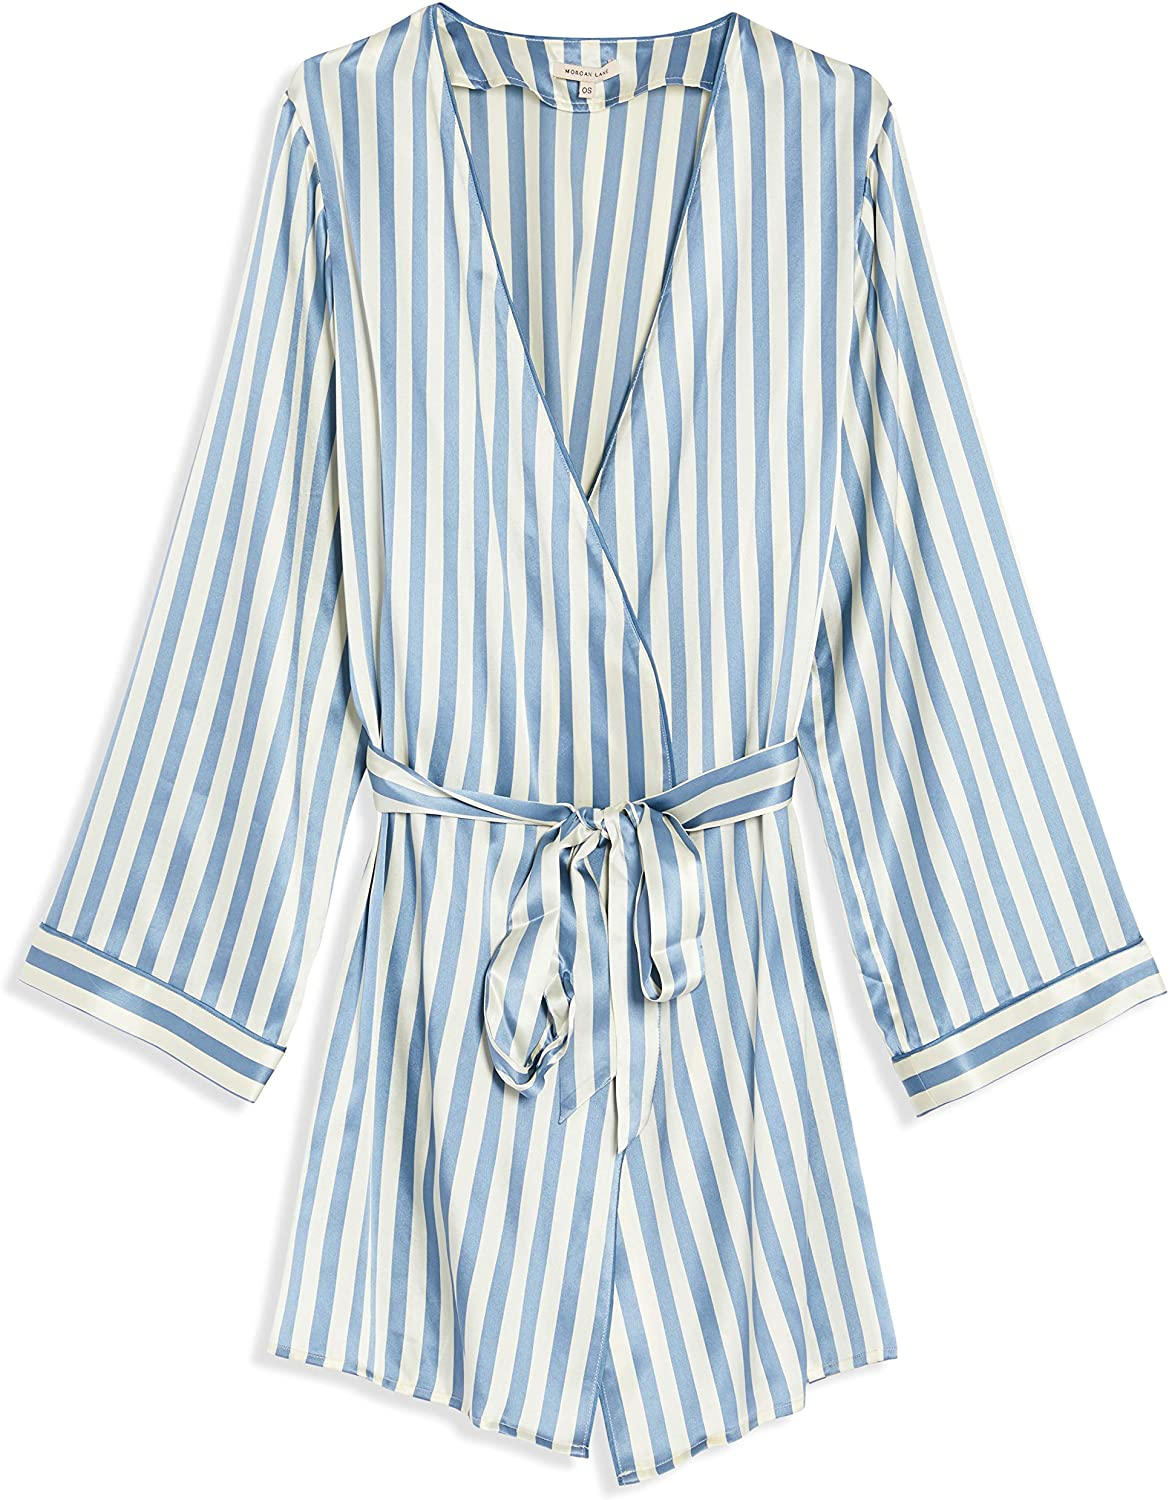 Morgan Lane 'Langley' Robe, Long Sleeve Silk Robe with Pockets and Belt, Solid or Striped Nightwear